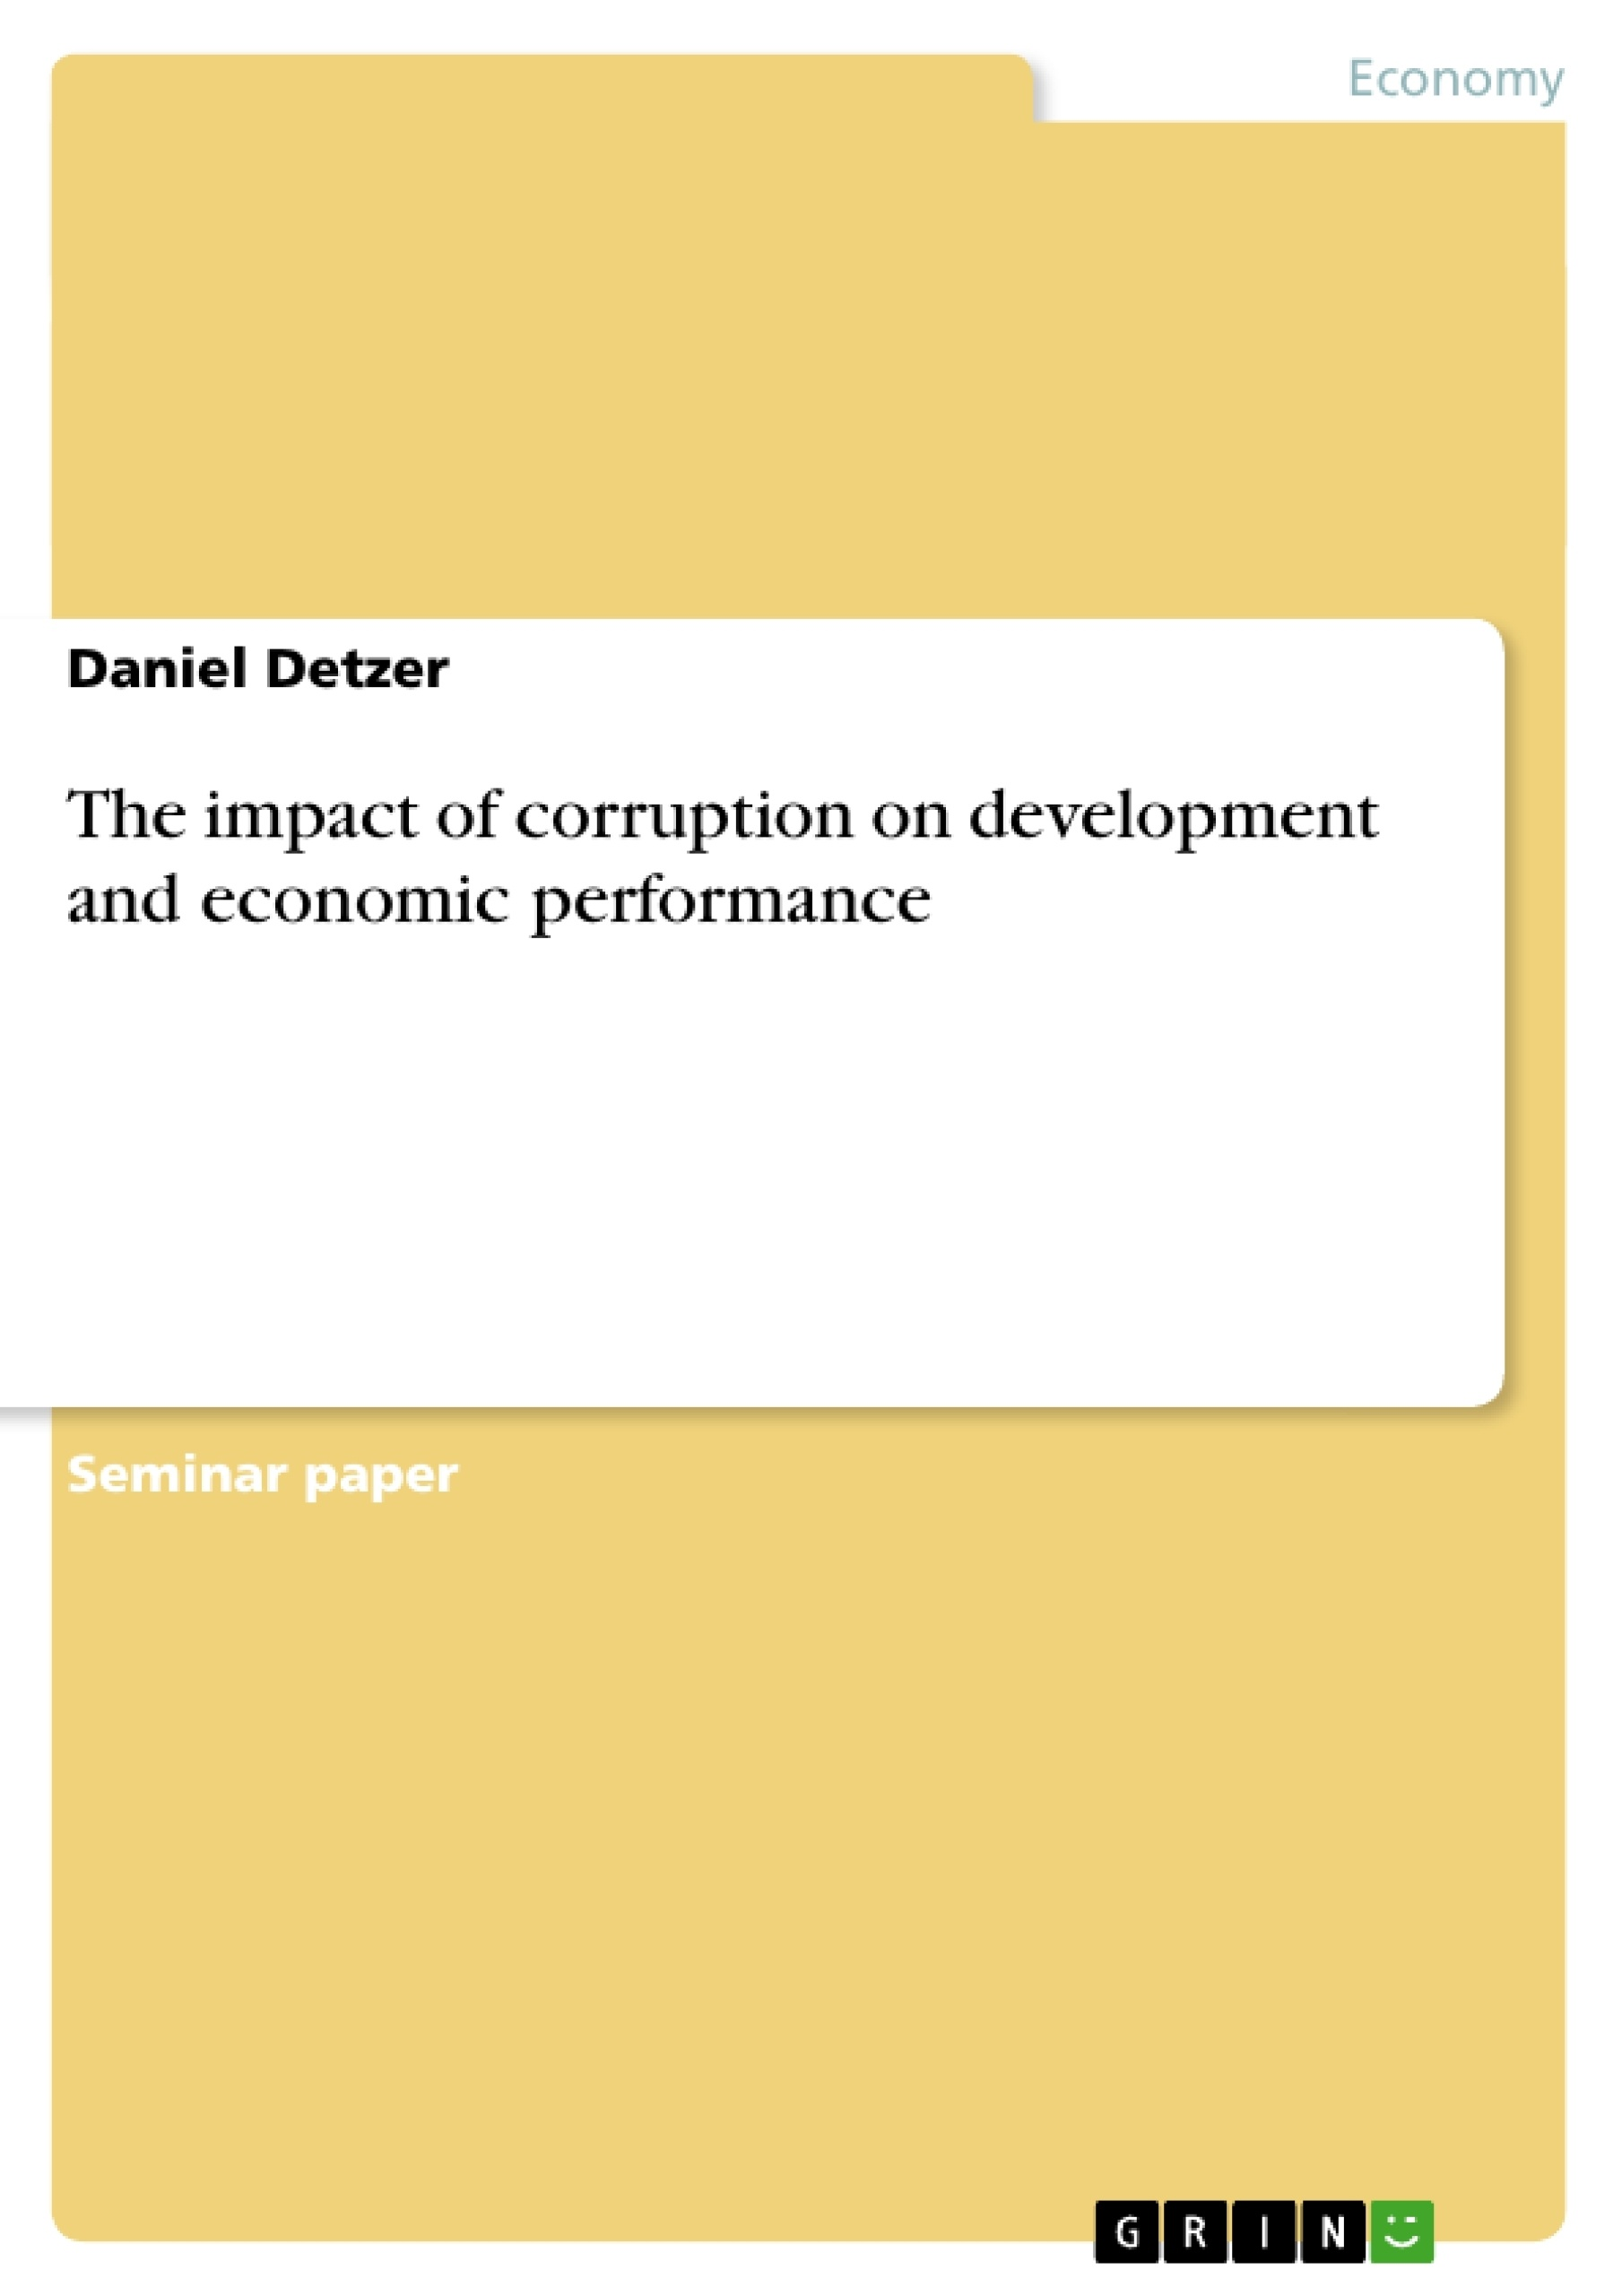 Title: The impact of corruption on development and economic performance